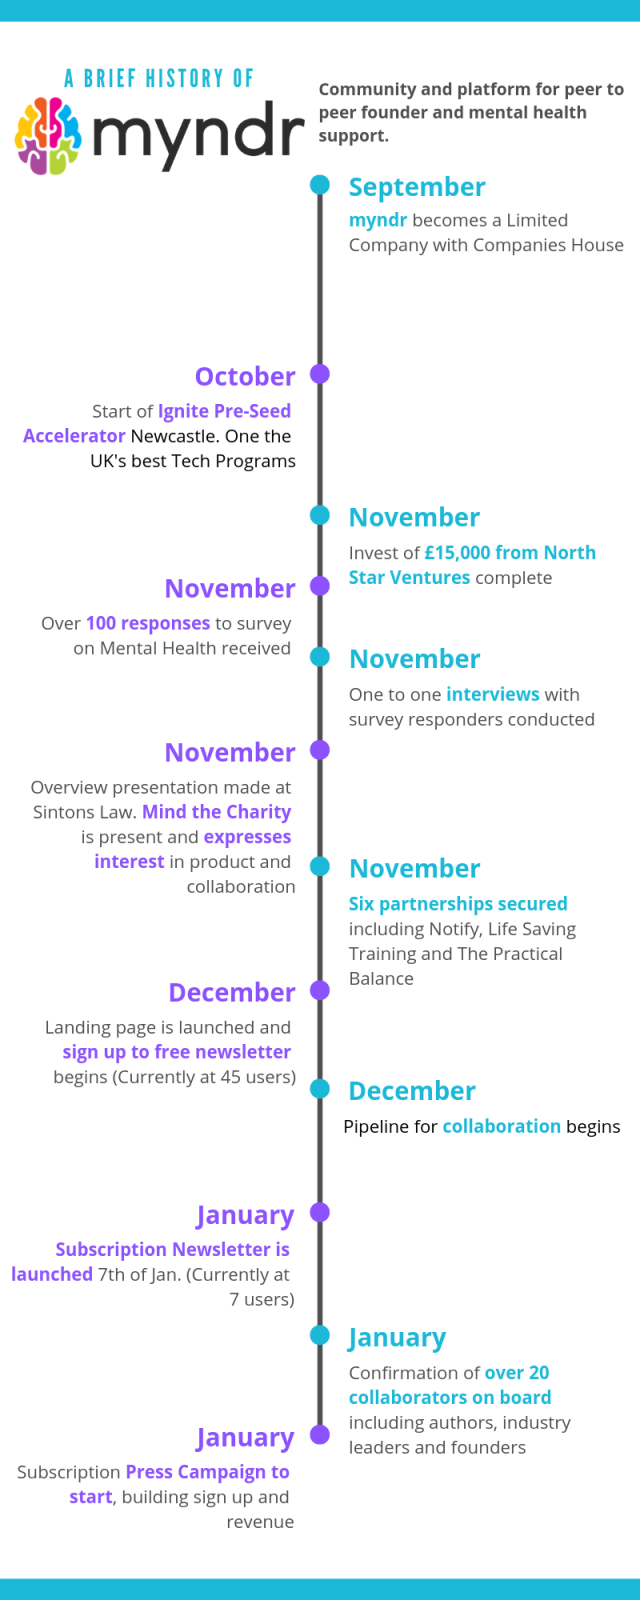 myndr history infographic sept to oct 19